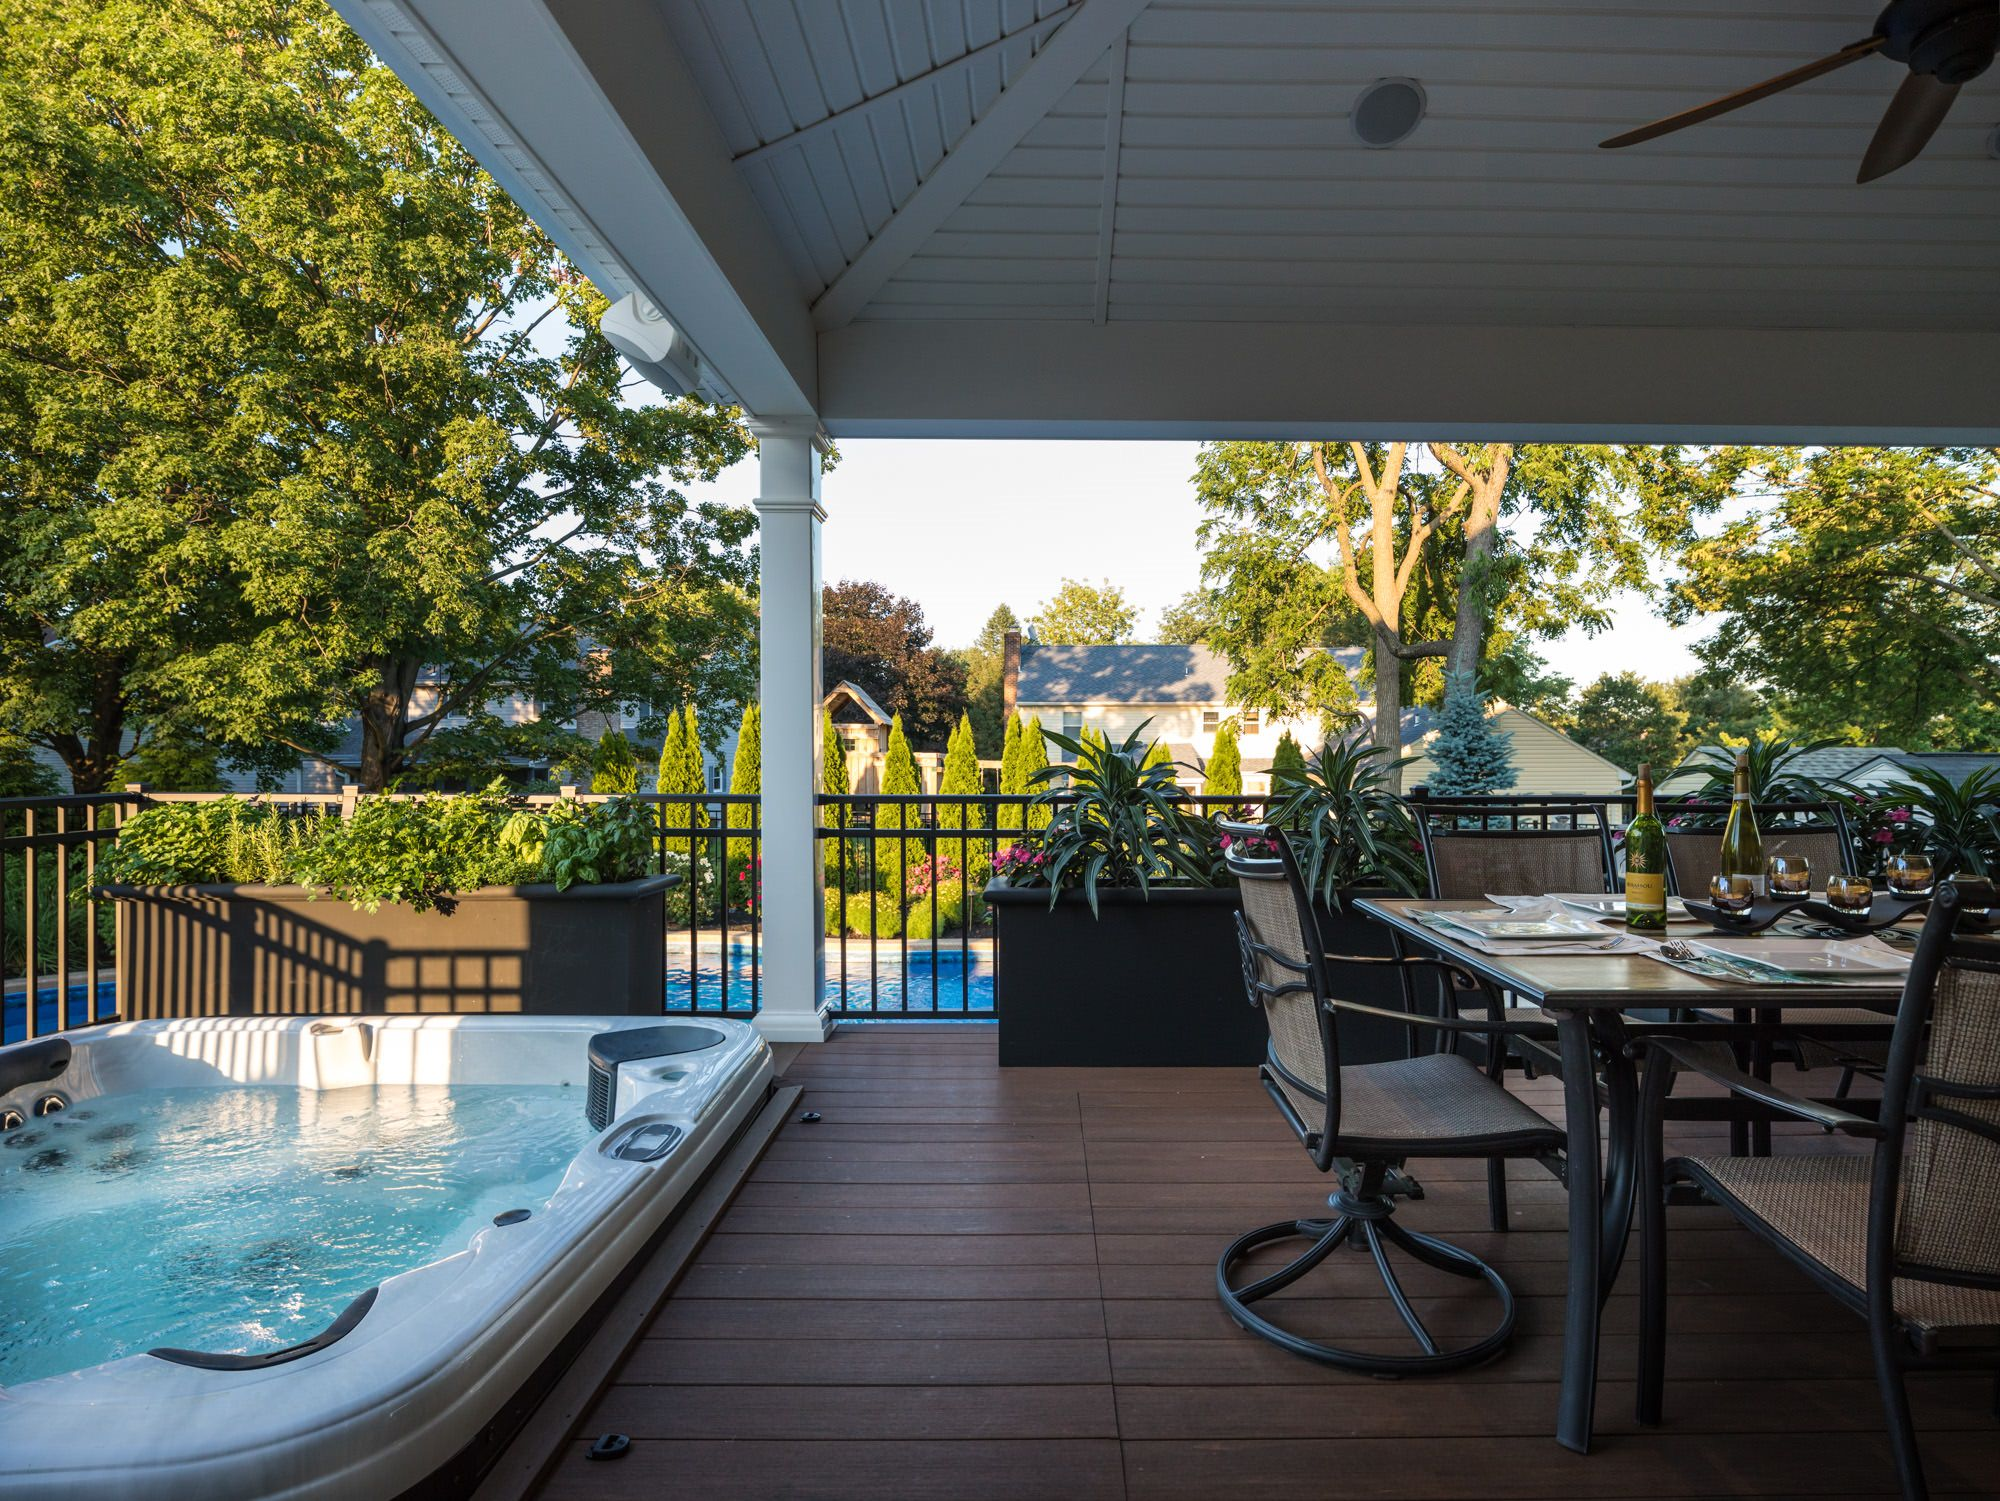 This sunken hot tub can be enjoyed 365 days a year due to its close proximity to the home and overhead roof protection.